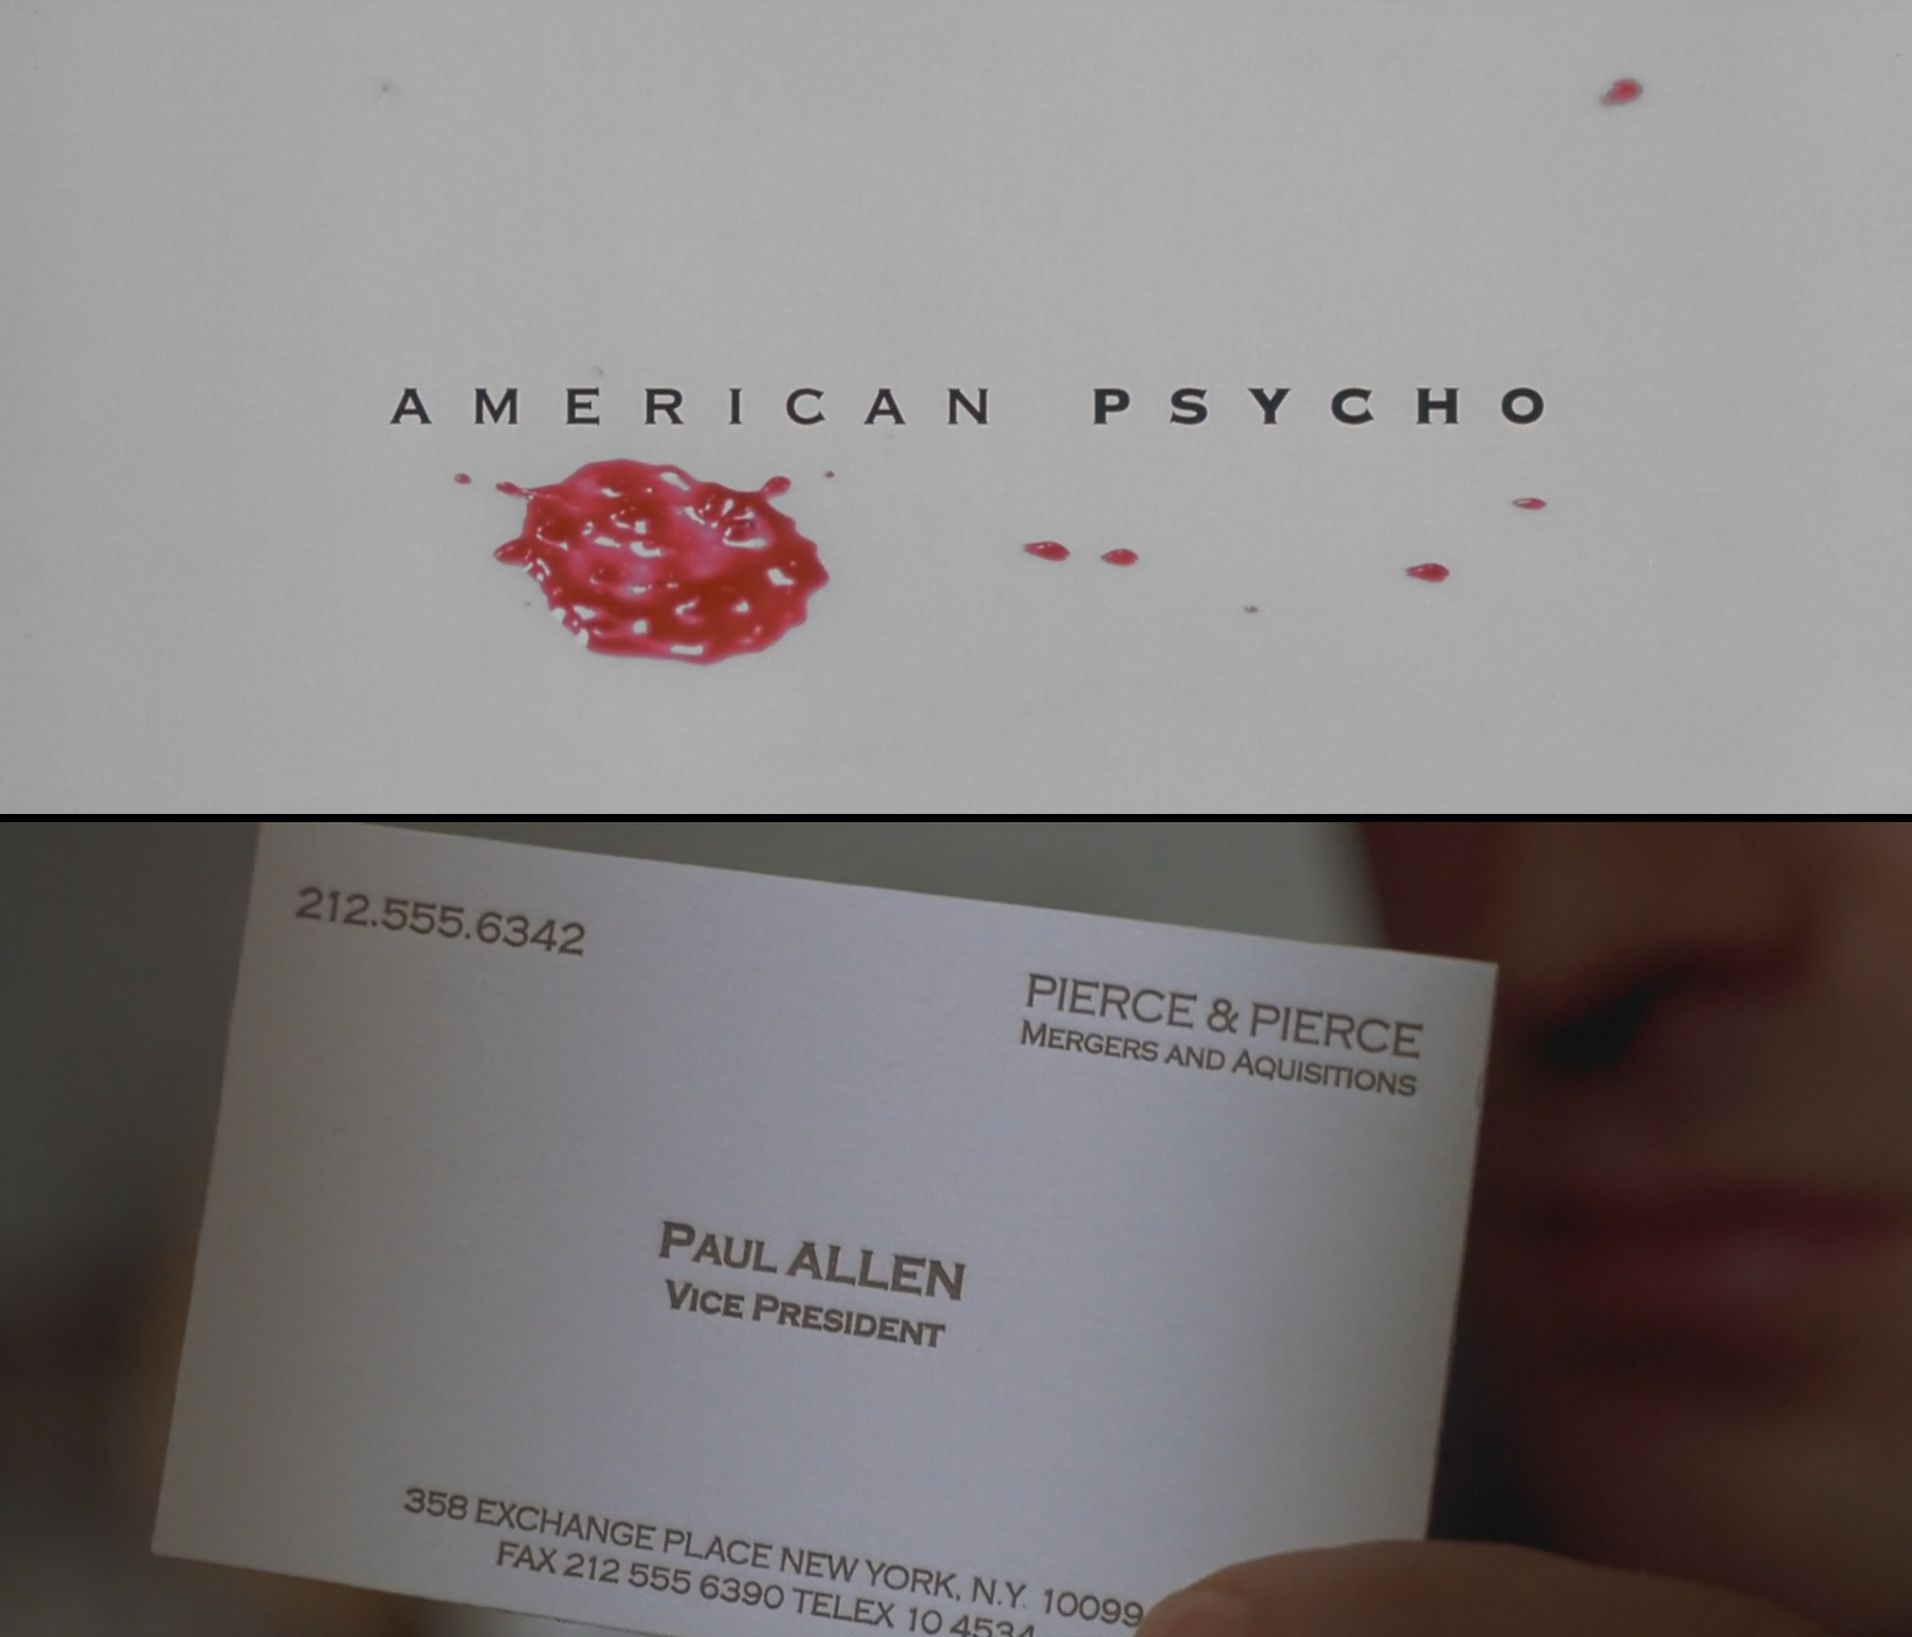 American Psycho Quotes Business Card Cards Pozycjoner Inside Paul Allen Business Card Template Business Card Template American Psycho Quotes Card Template